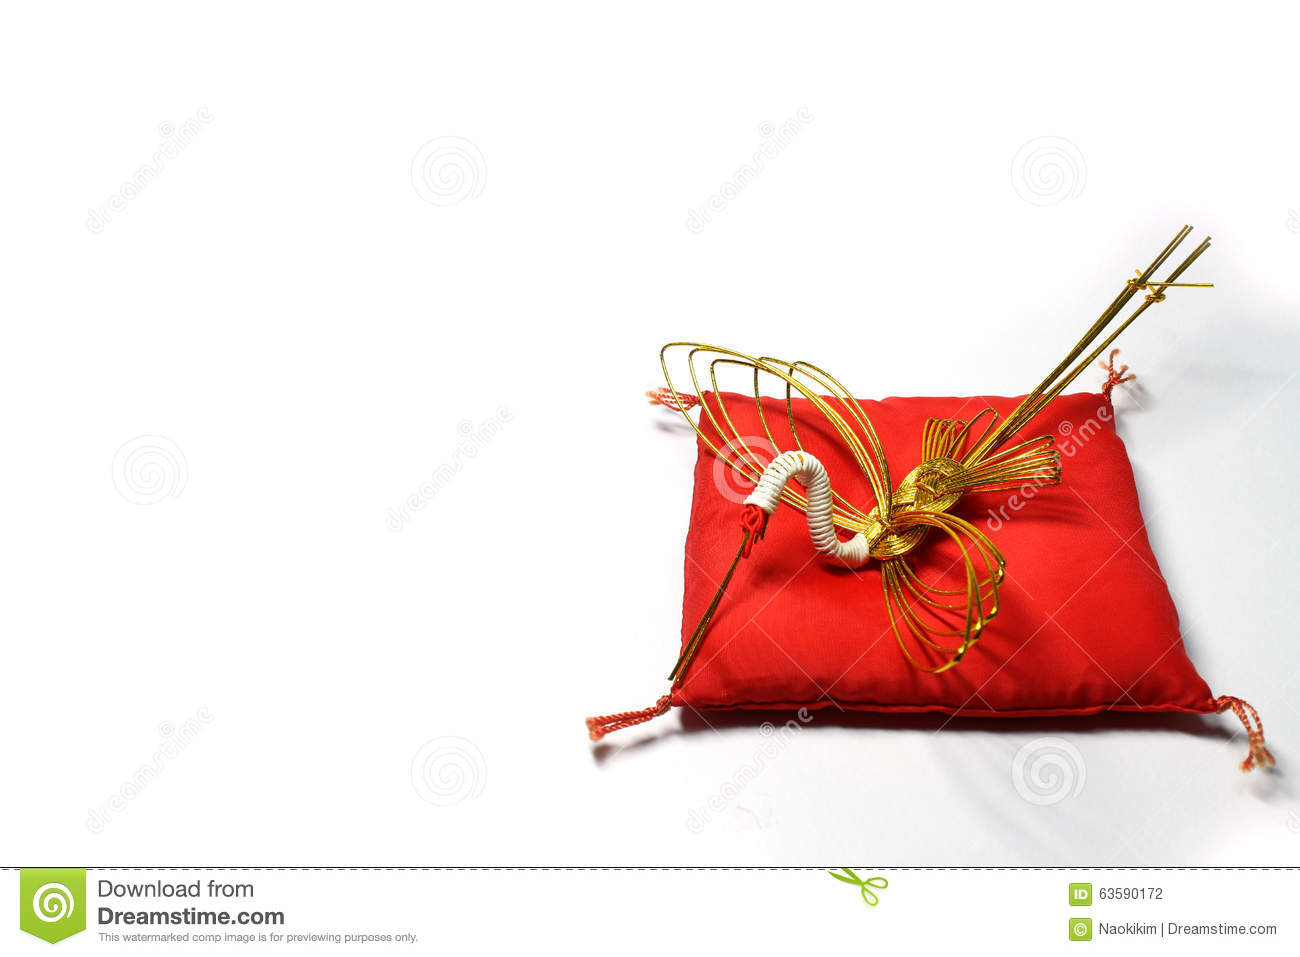 New Year Gold Crane On The Red Cushion Stock Photo - Image of ...